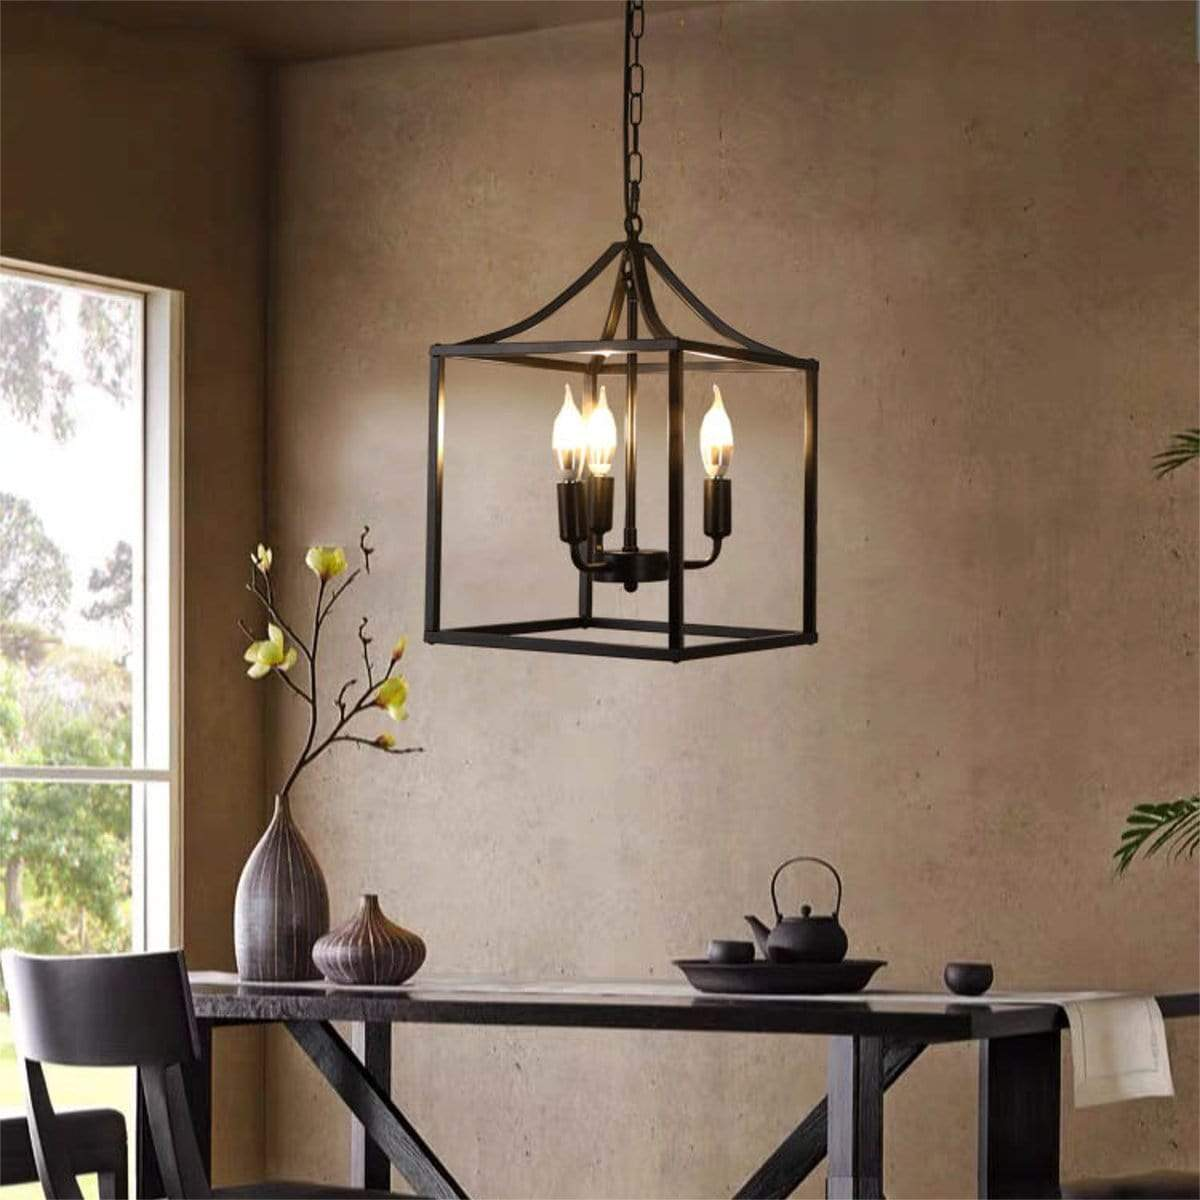 single-metal-pendant-lamp-over-a-table-Zavato-Home